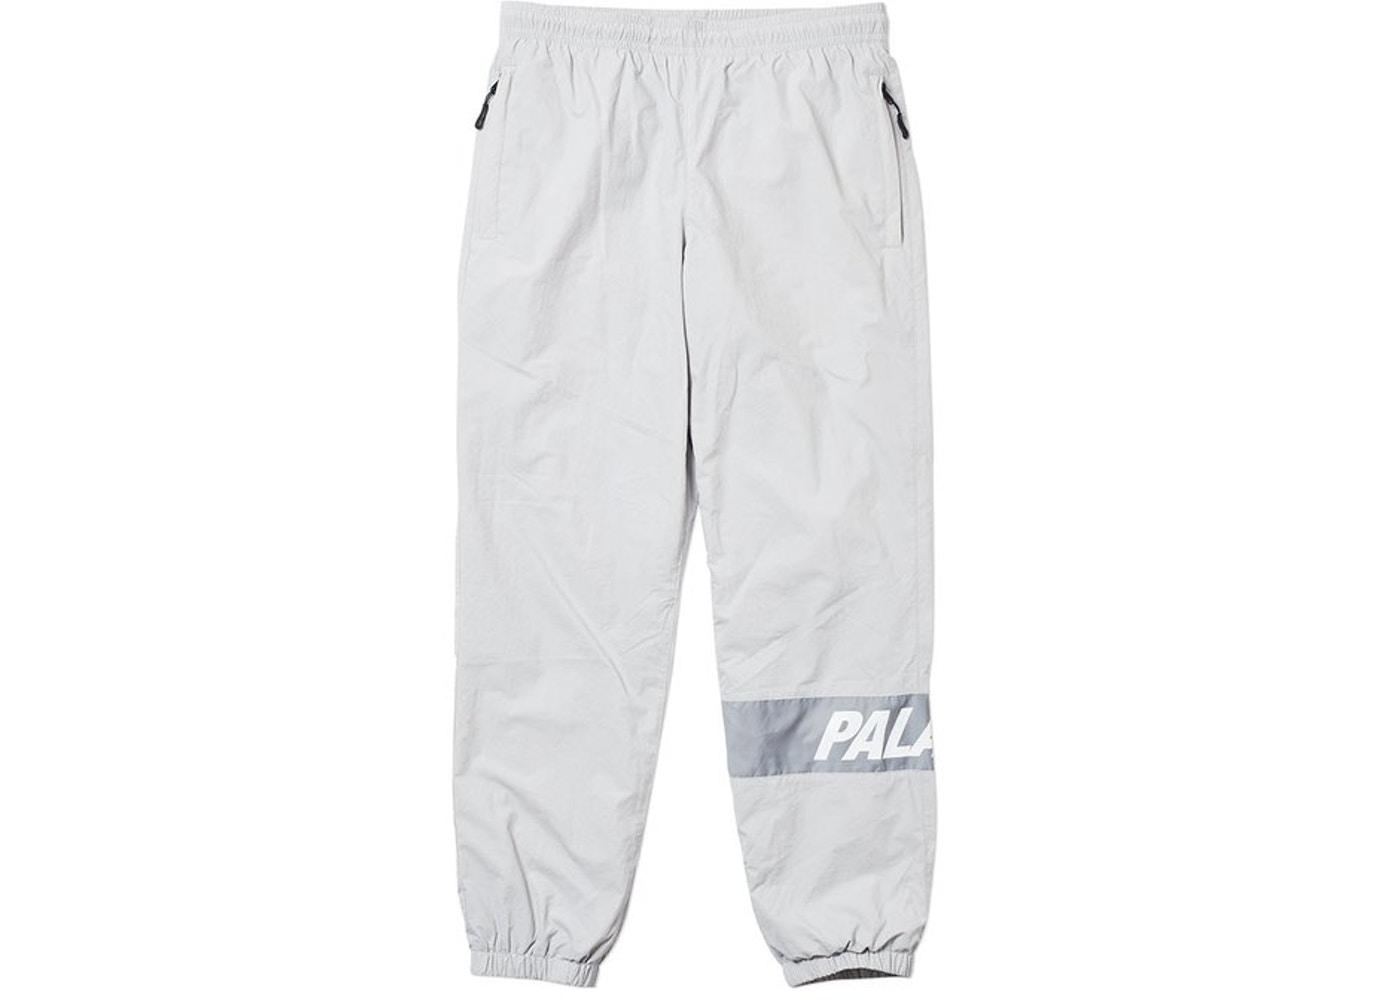 dd8f9a84 Streetwear - Palace Bottoms - New Lowest Asks